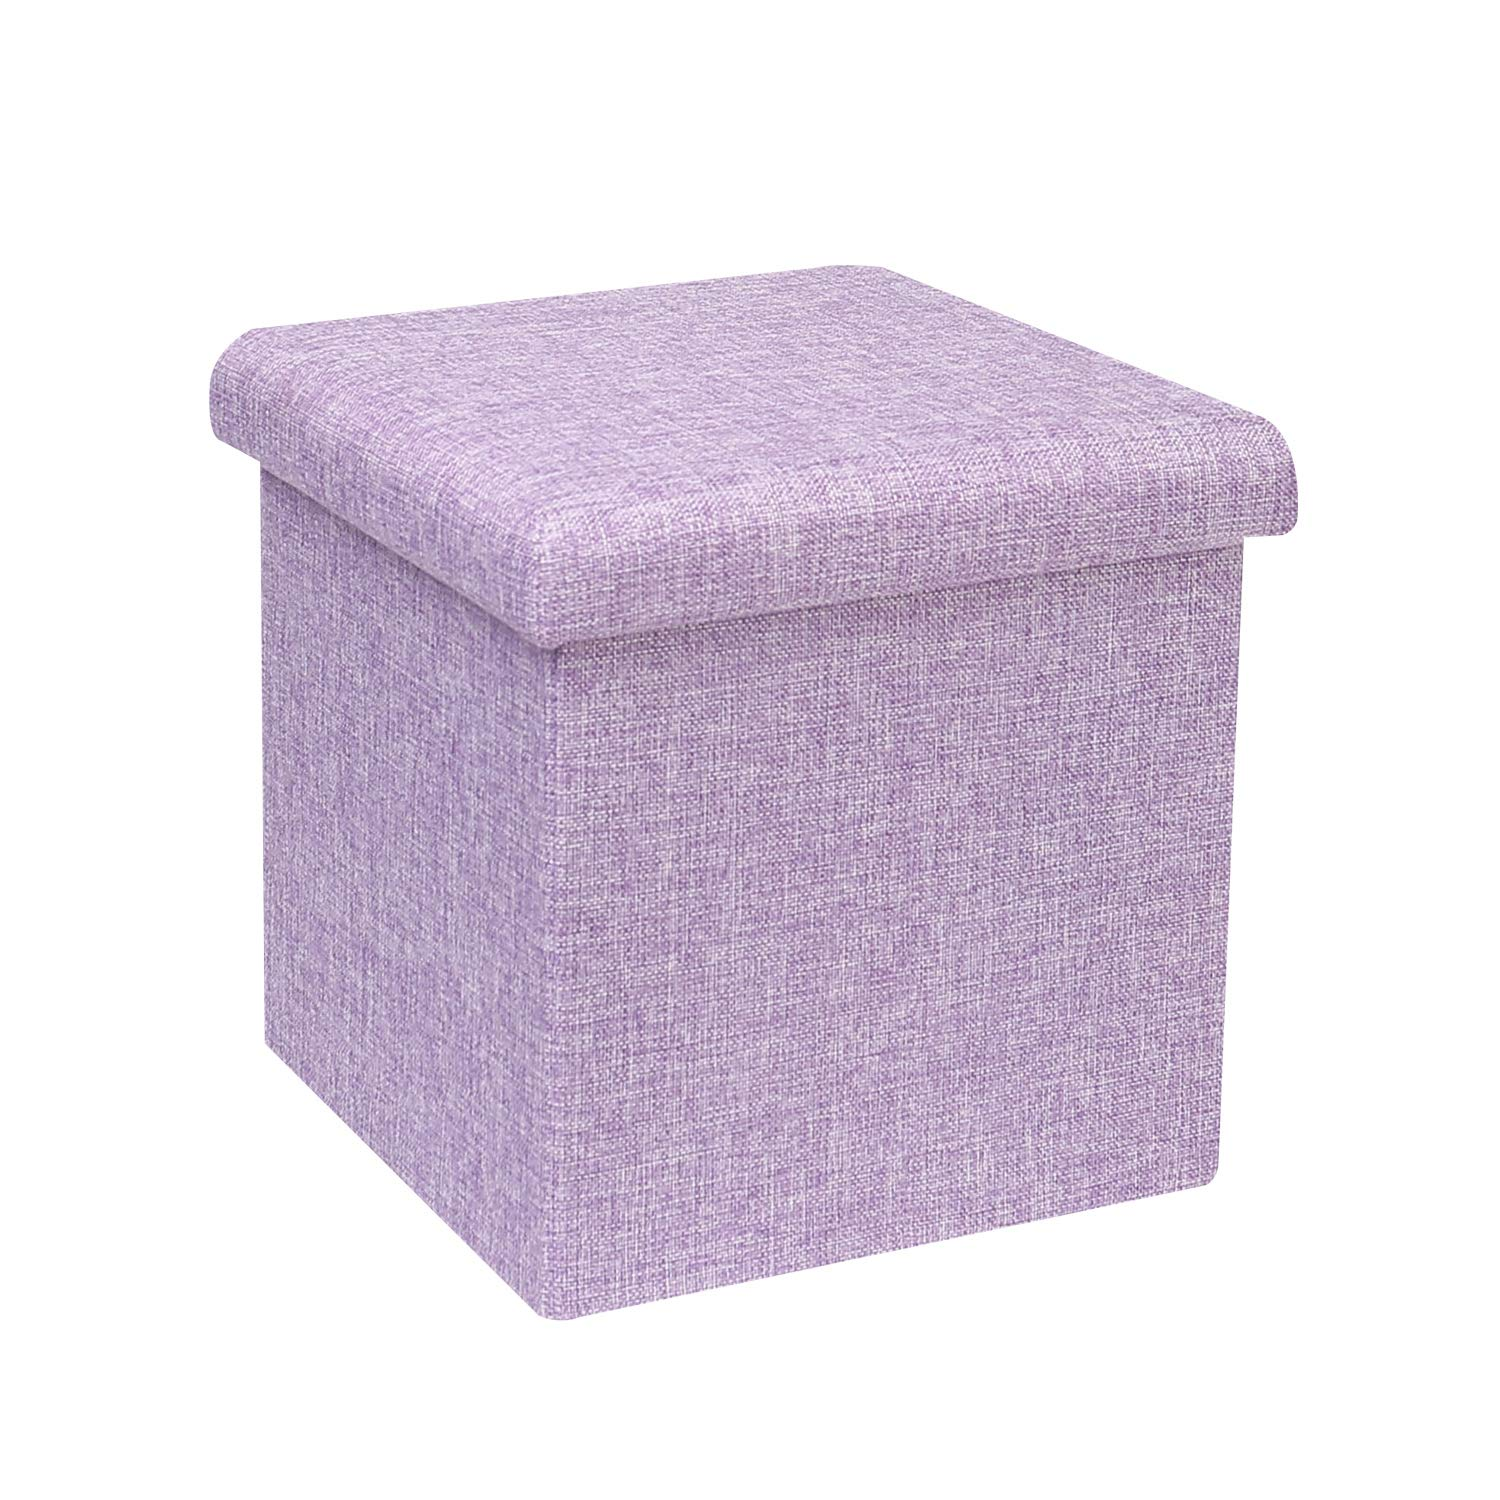 "B FSOBEIIALEO Storage Ottoman Cube, Linen Small Coffee Table, Foot Rest Stool Seat, Folding Toys Chest Collapsible for Kids Light Purple 11.8""x11.8""x11.8"""